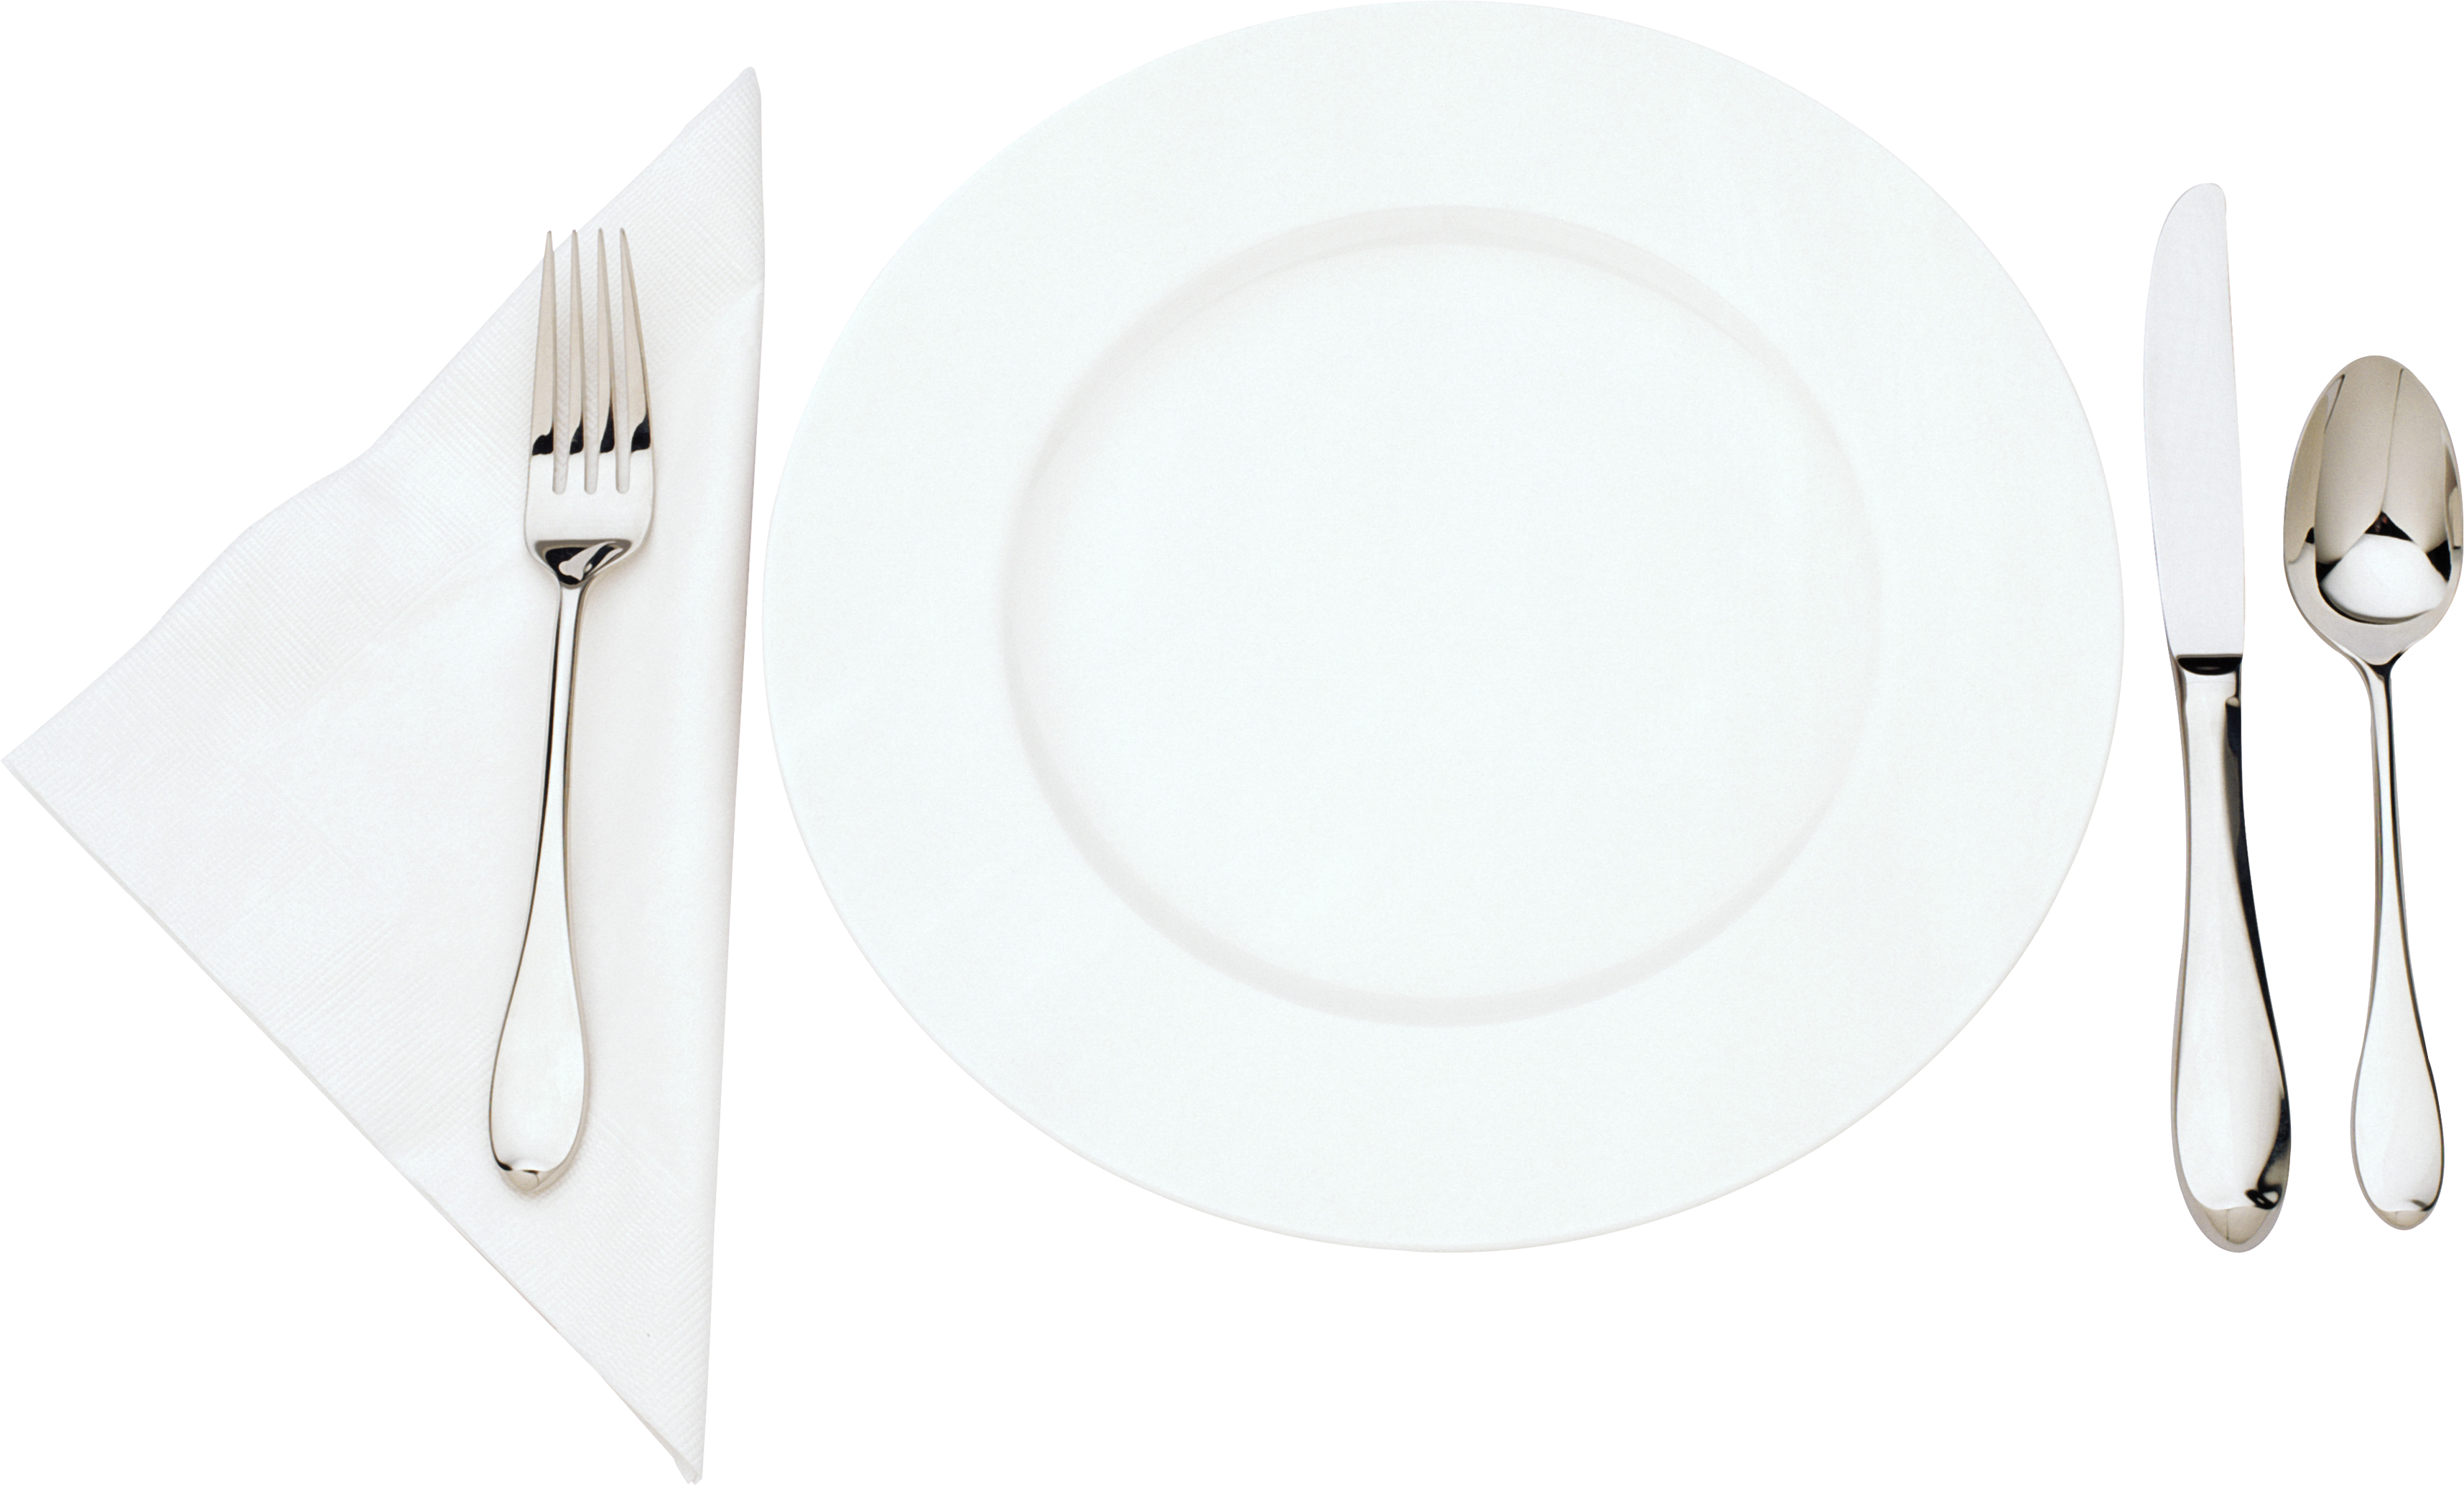 Fork clipart holding. Plates with forks and